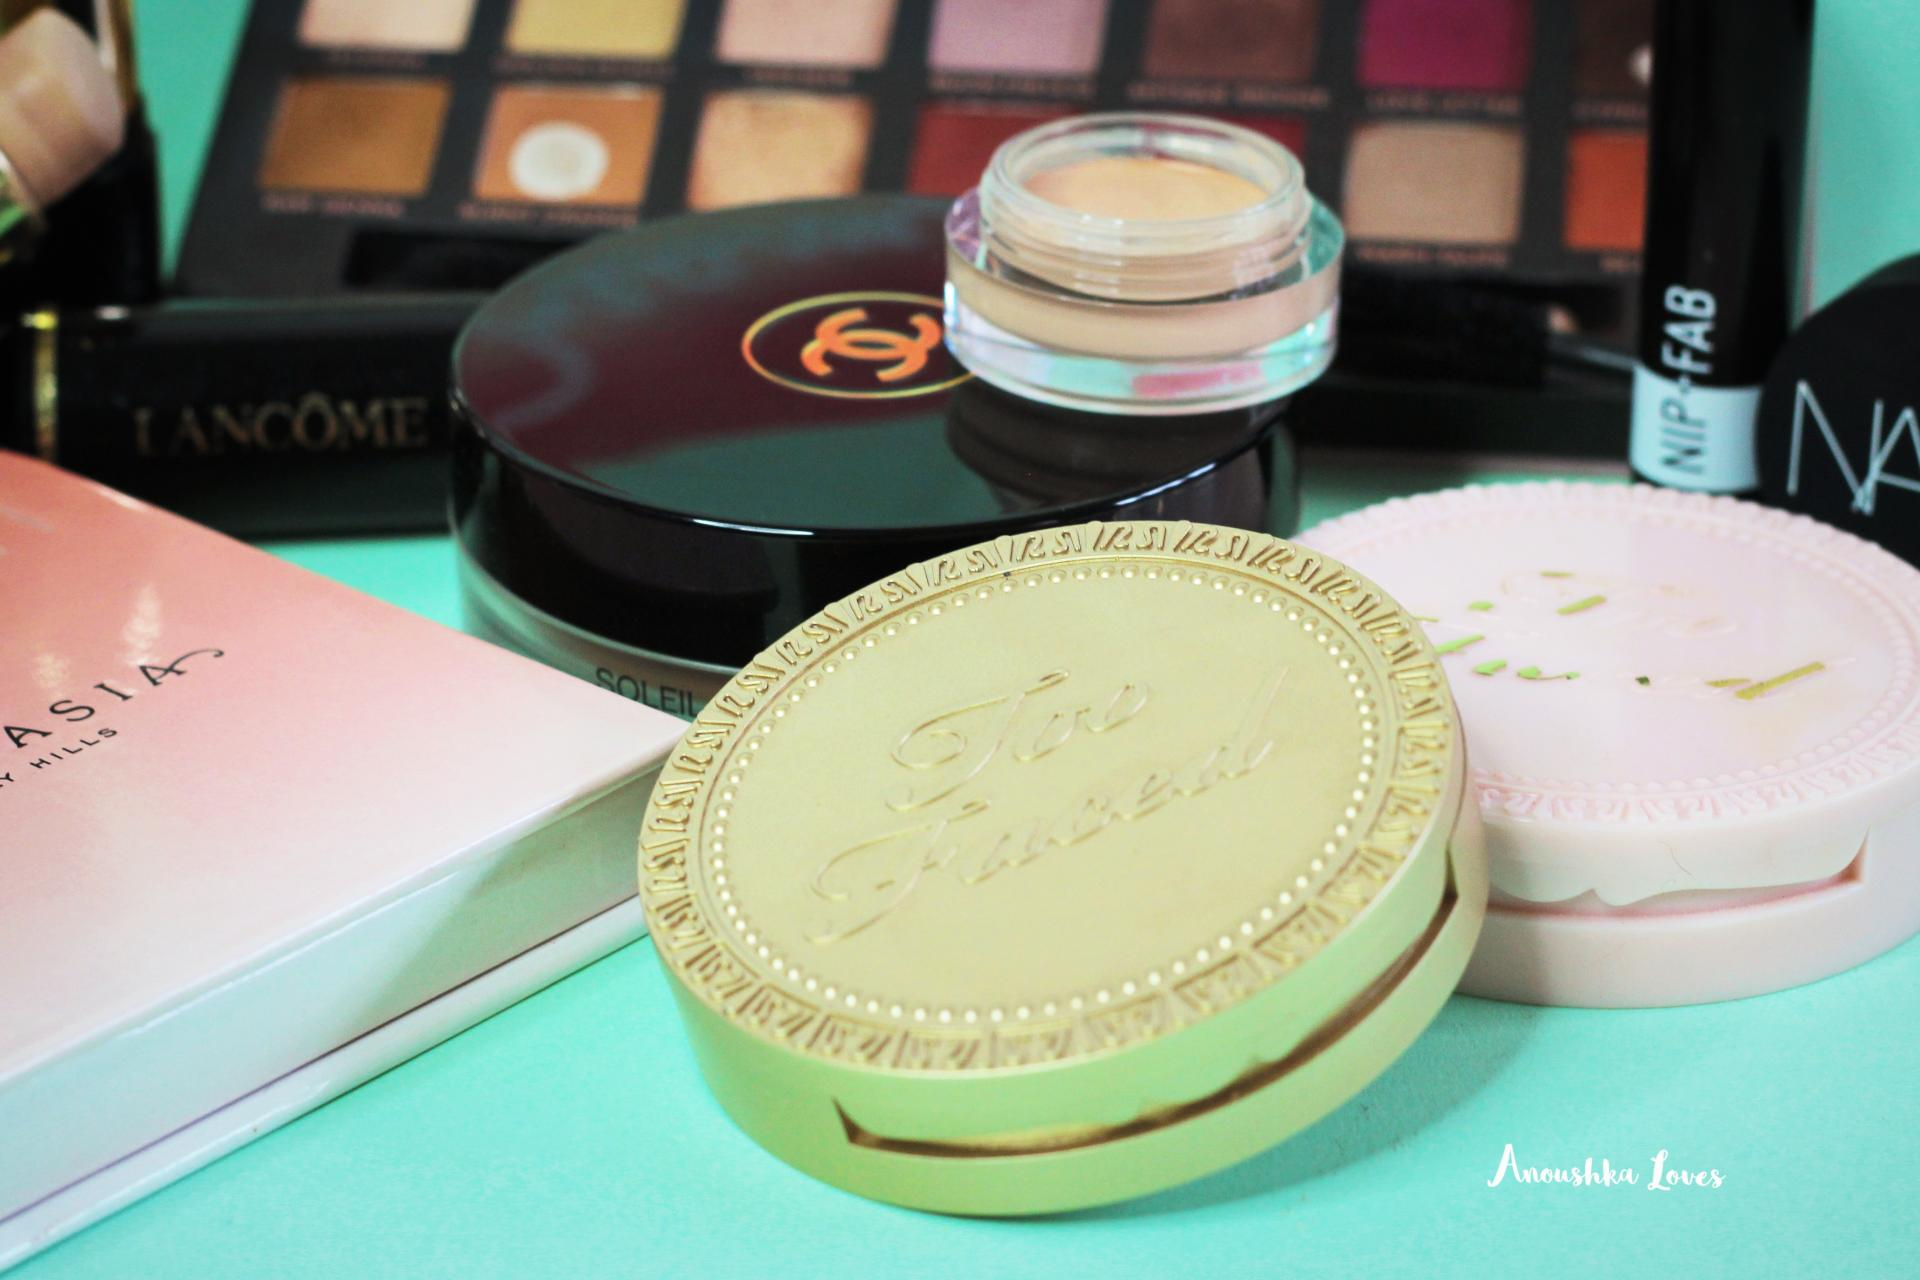 My Holy Grail of Makeup anastasia beverly hills nars soft matte lancome too faced